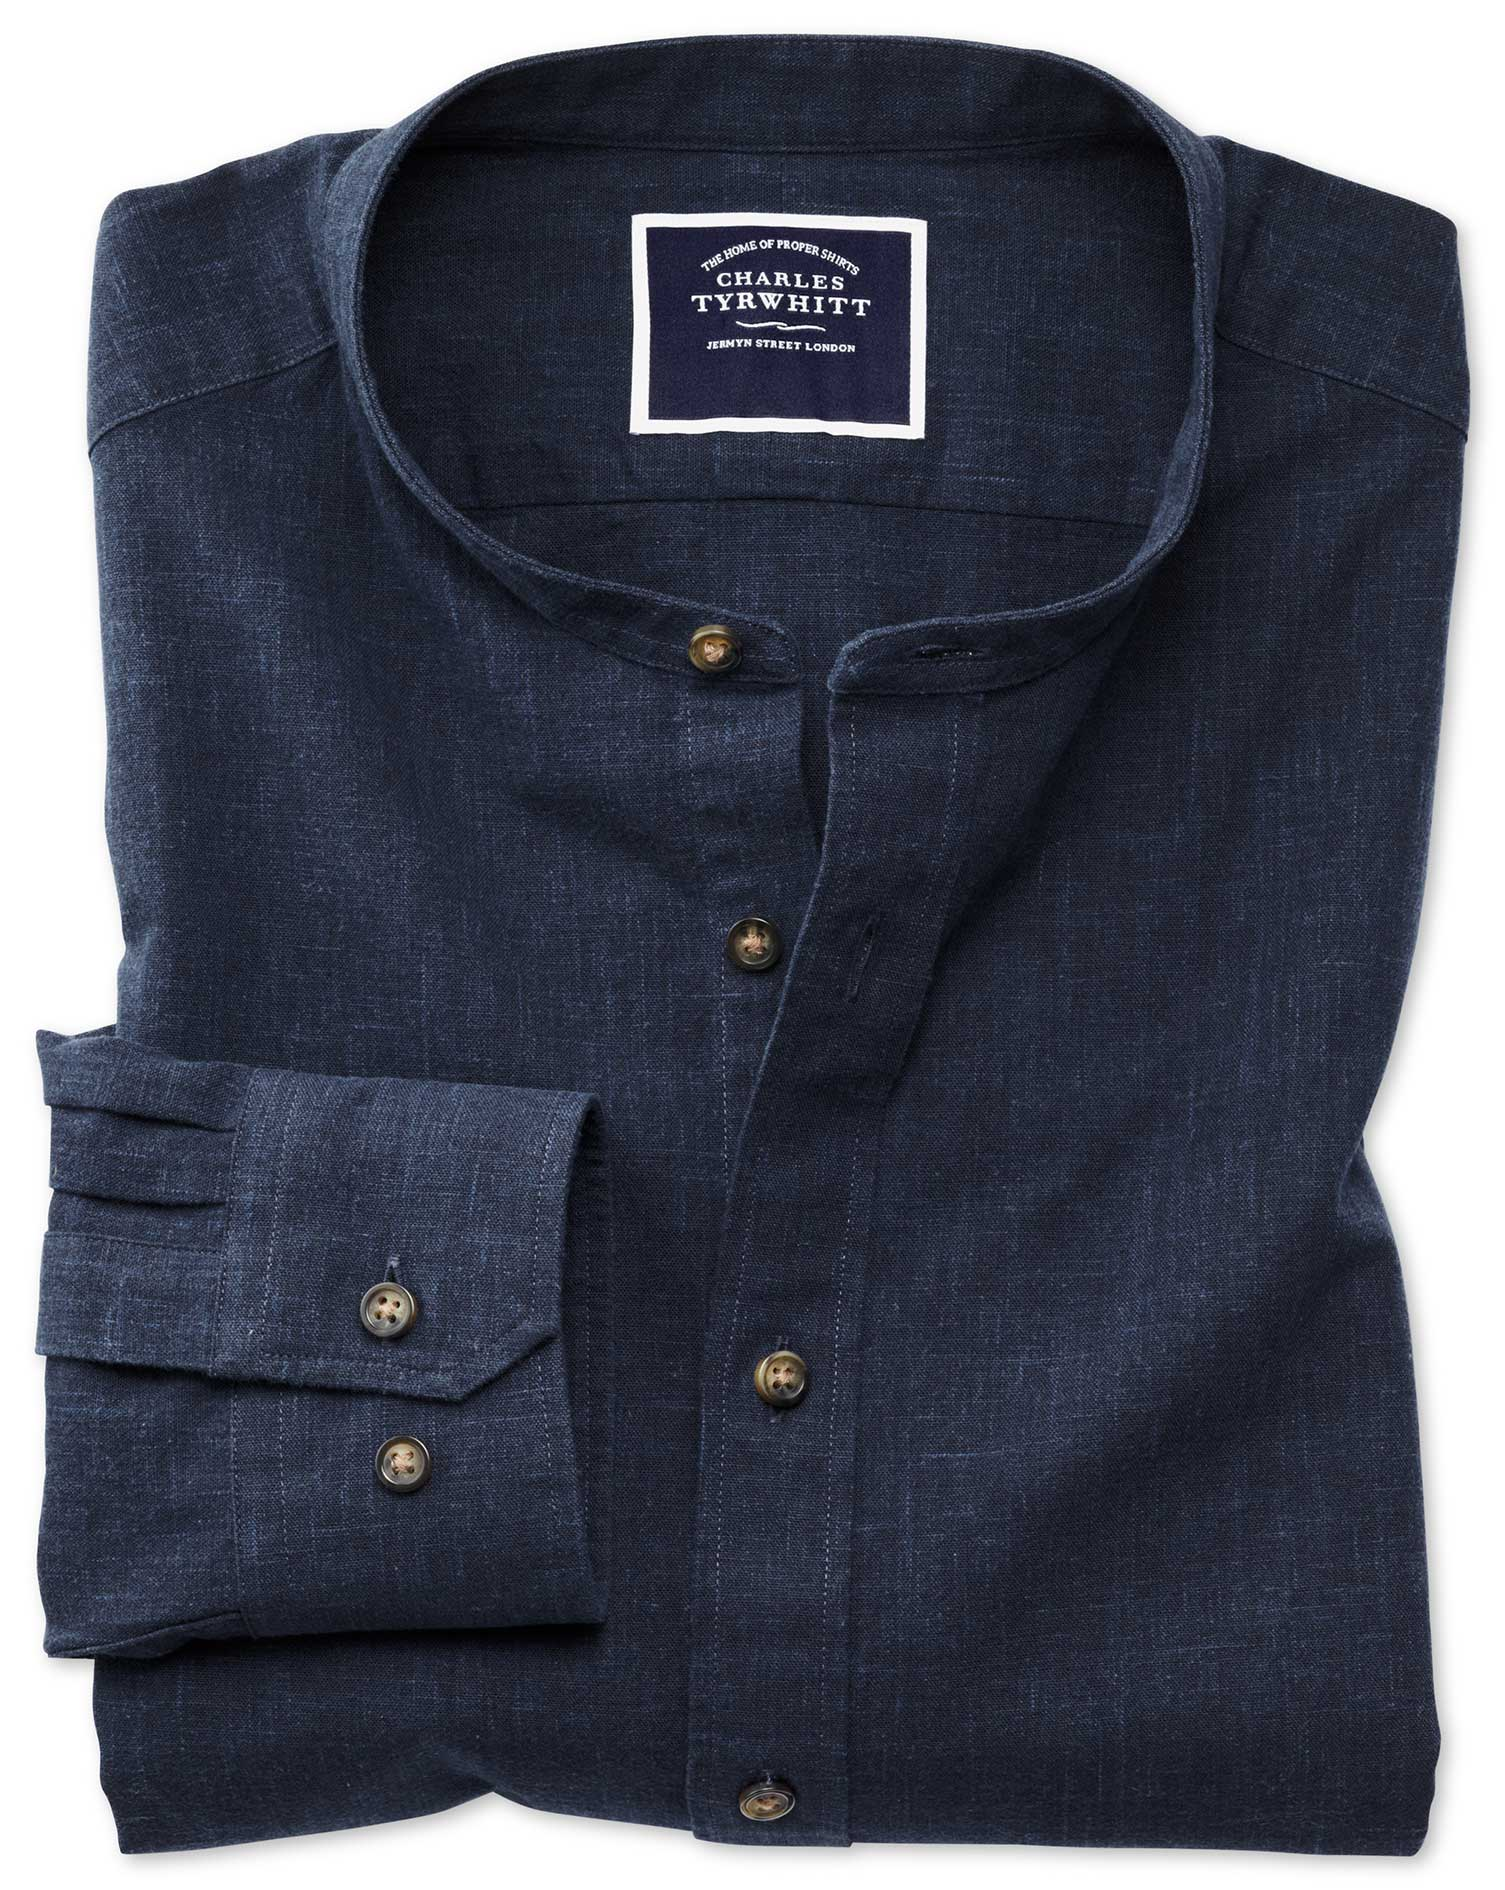 Slim Fit Collarless Navy Cotton Shirt Single Cuff Size Large by Charles Tyrwhitt